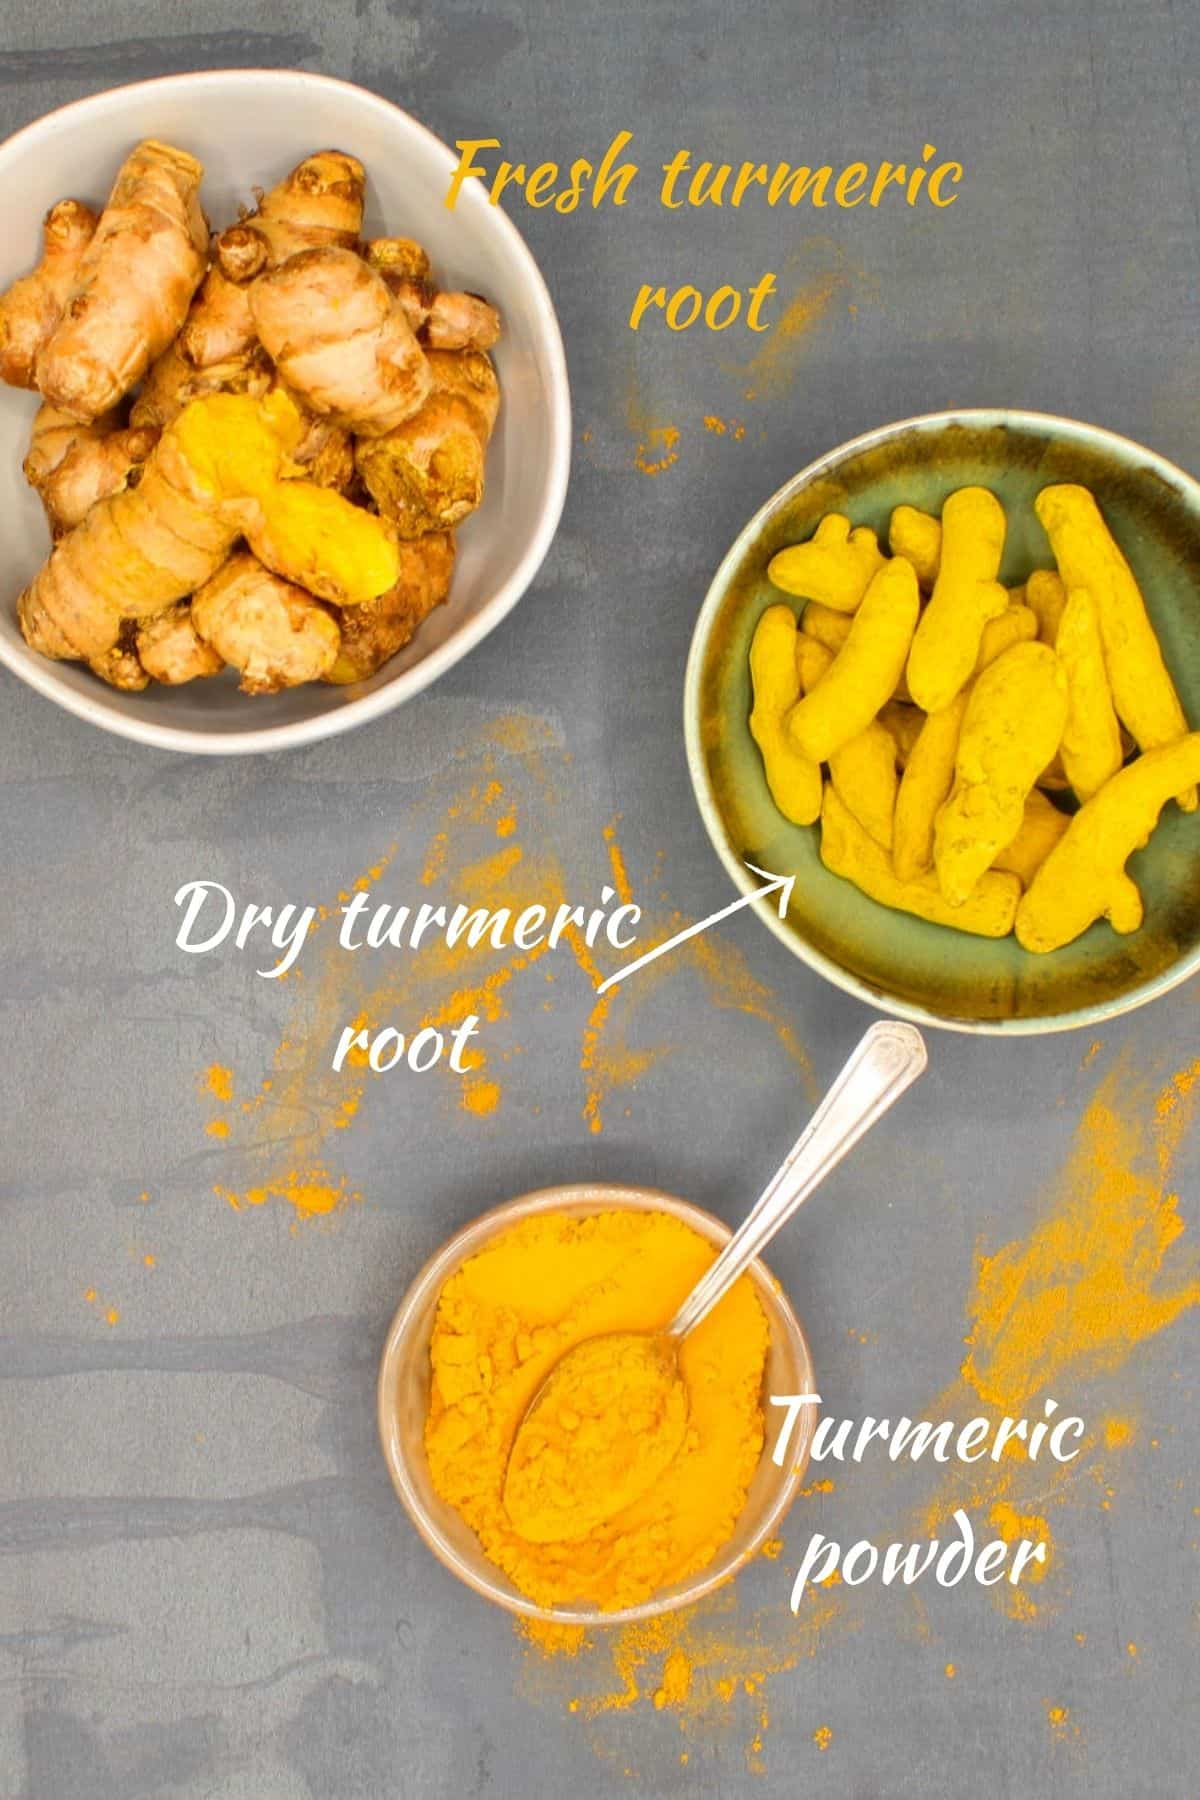 Different types of turmeric--dry root, fresh root and turmeric powder